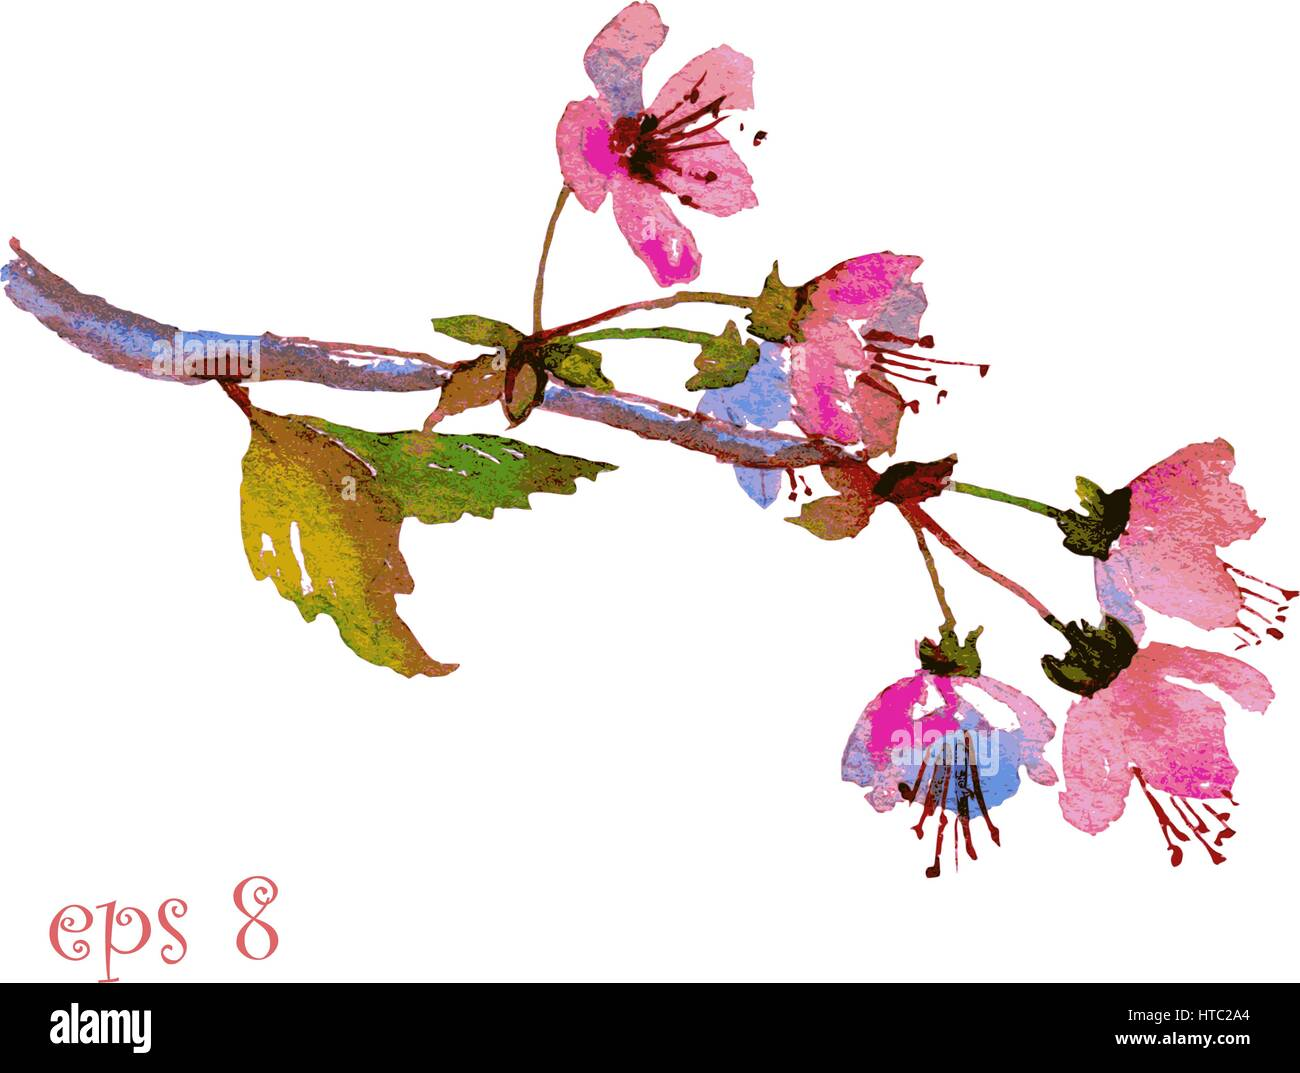 Cherry Blossom Sakura Branch With Pink Flowers Hand Painted Stock Vector Image Art Alamy